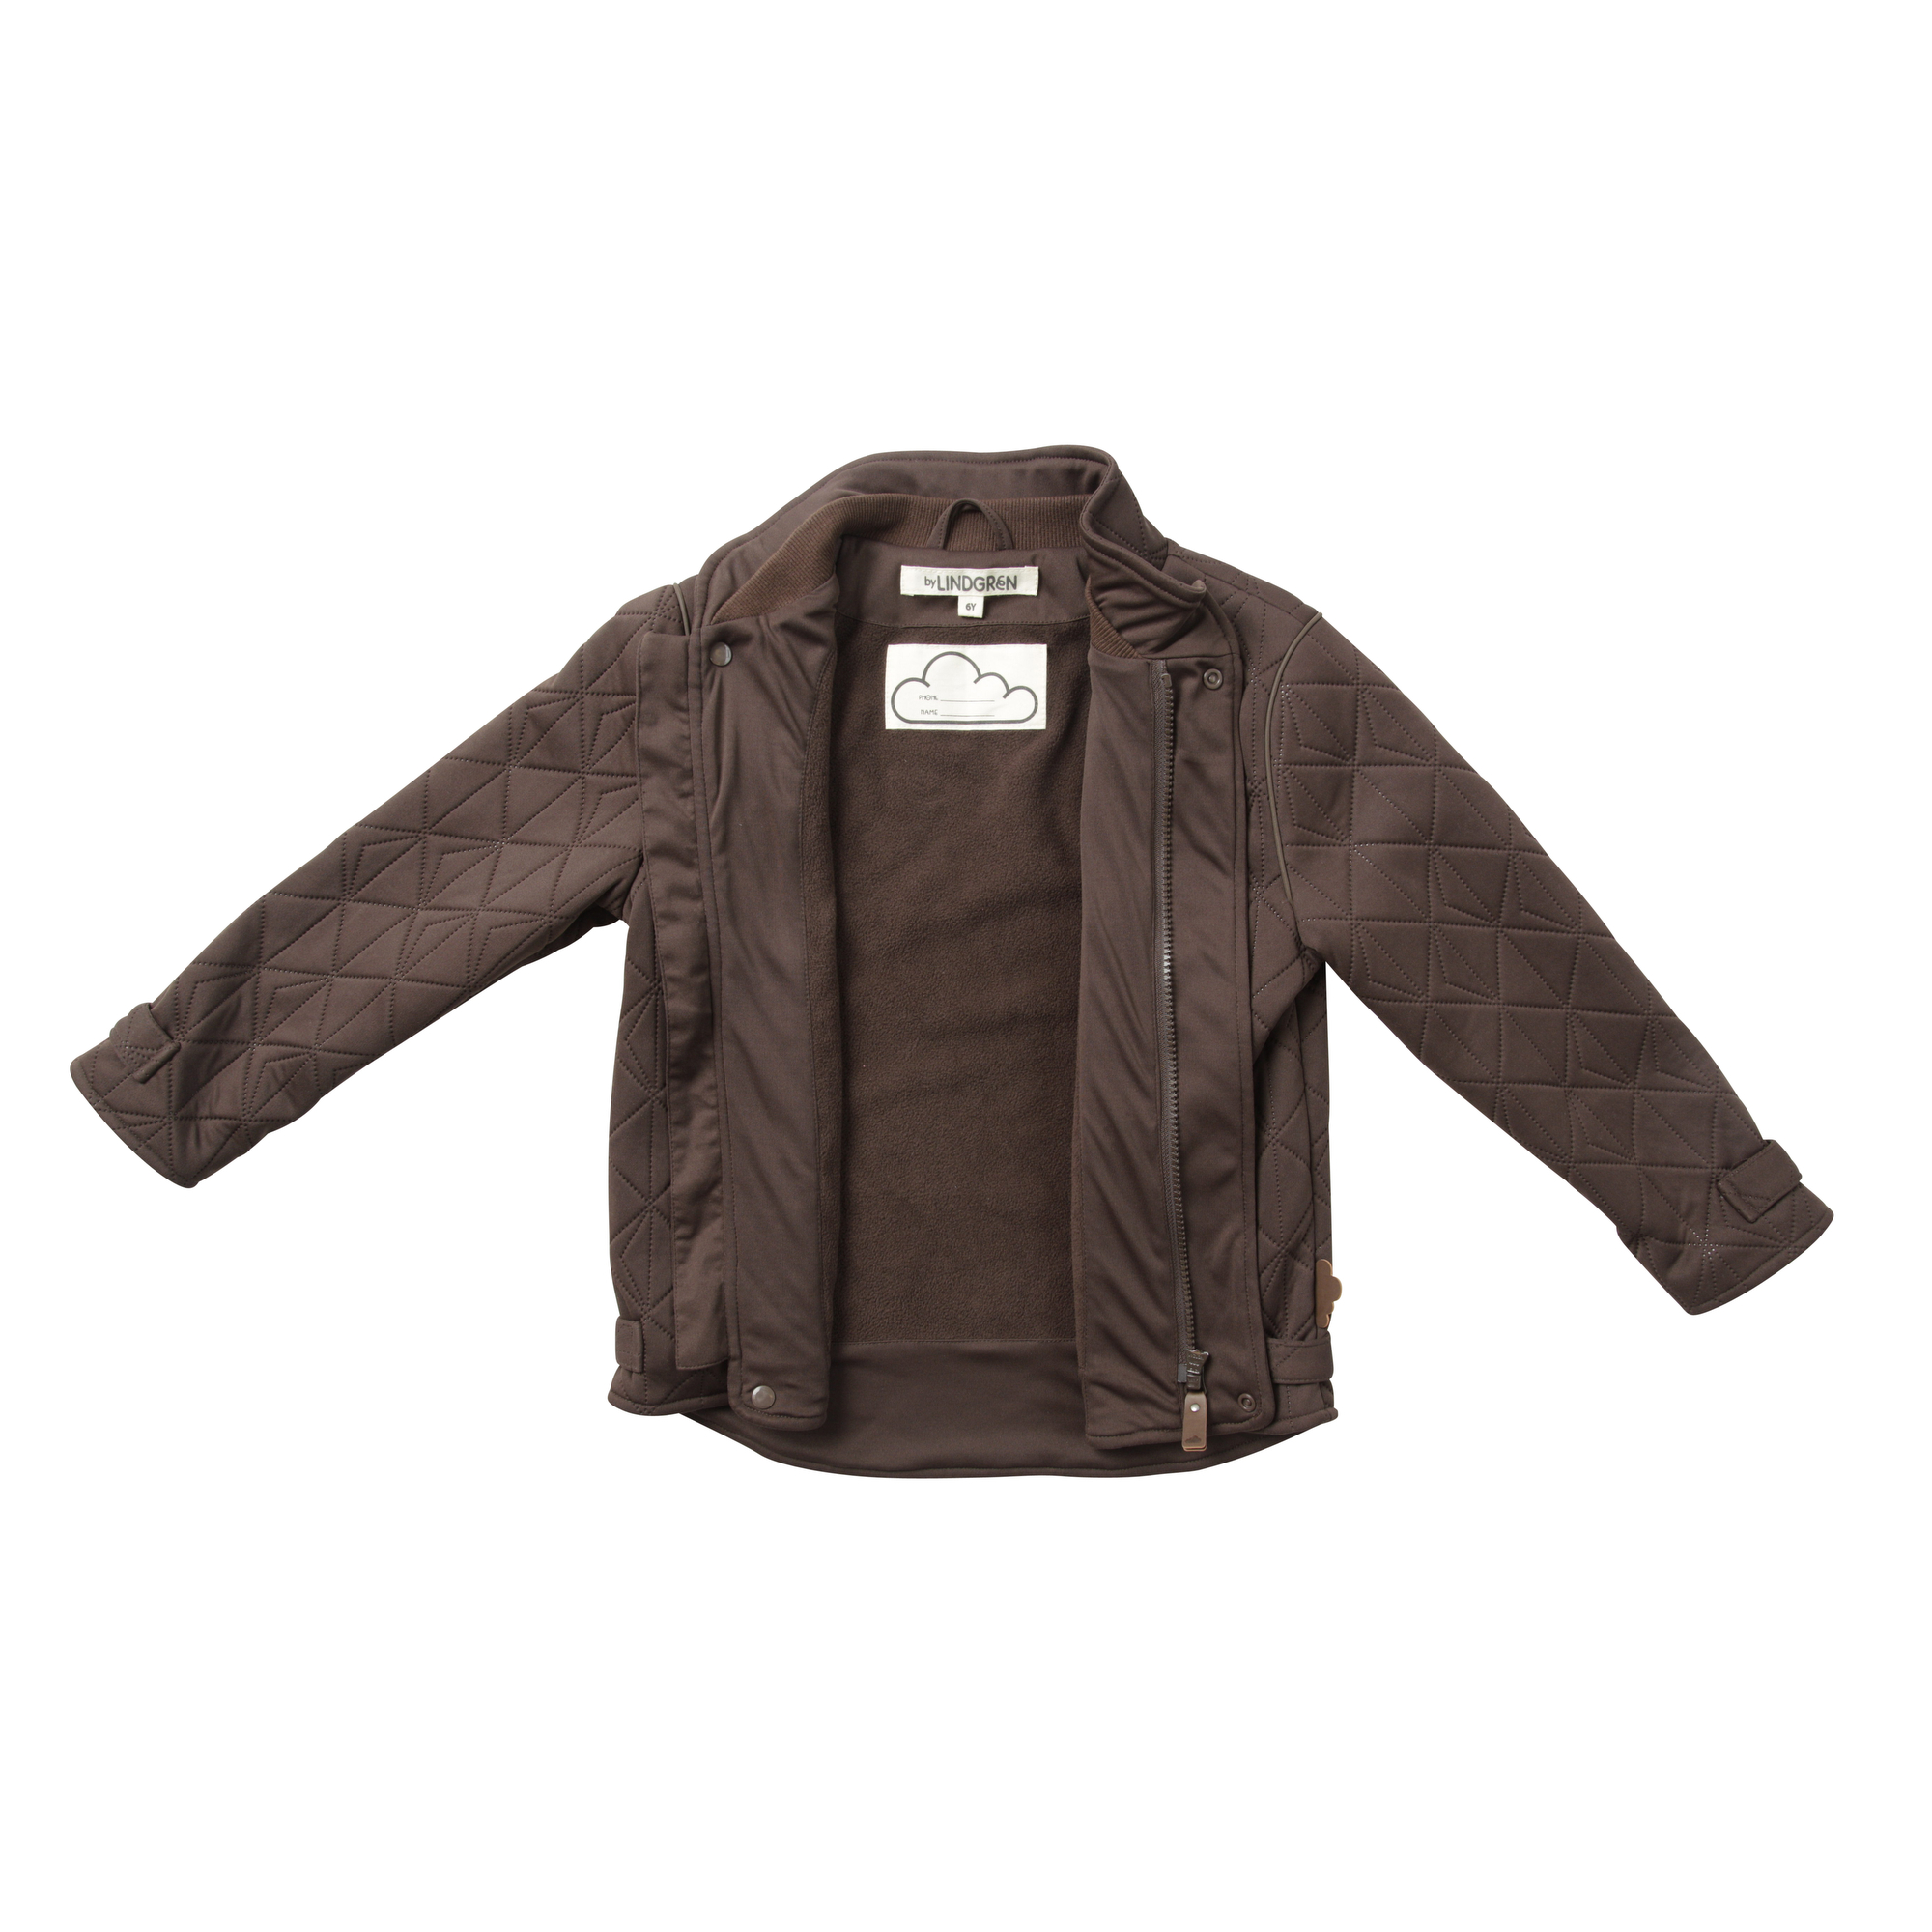 BY LINDGREN | LILLE LEIF THERMO JAKKE FLEECE, MOCCA